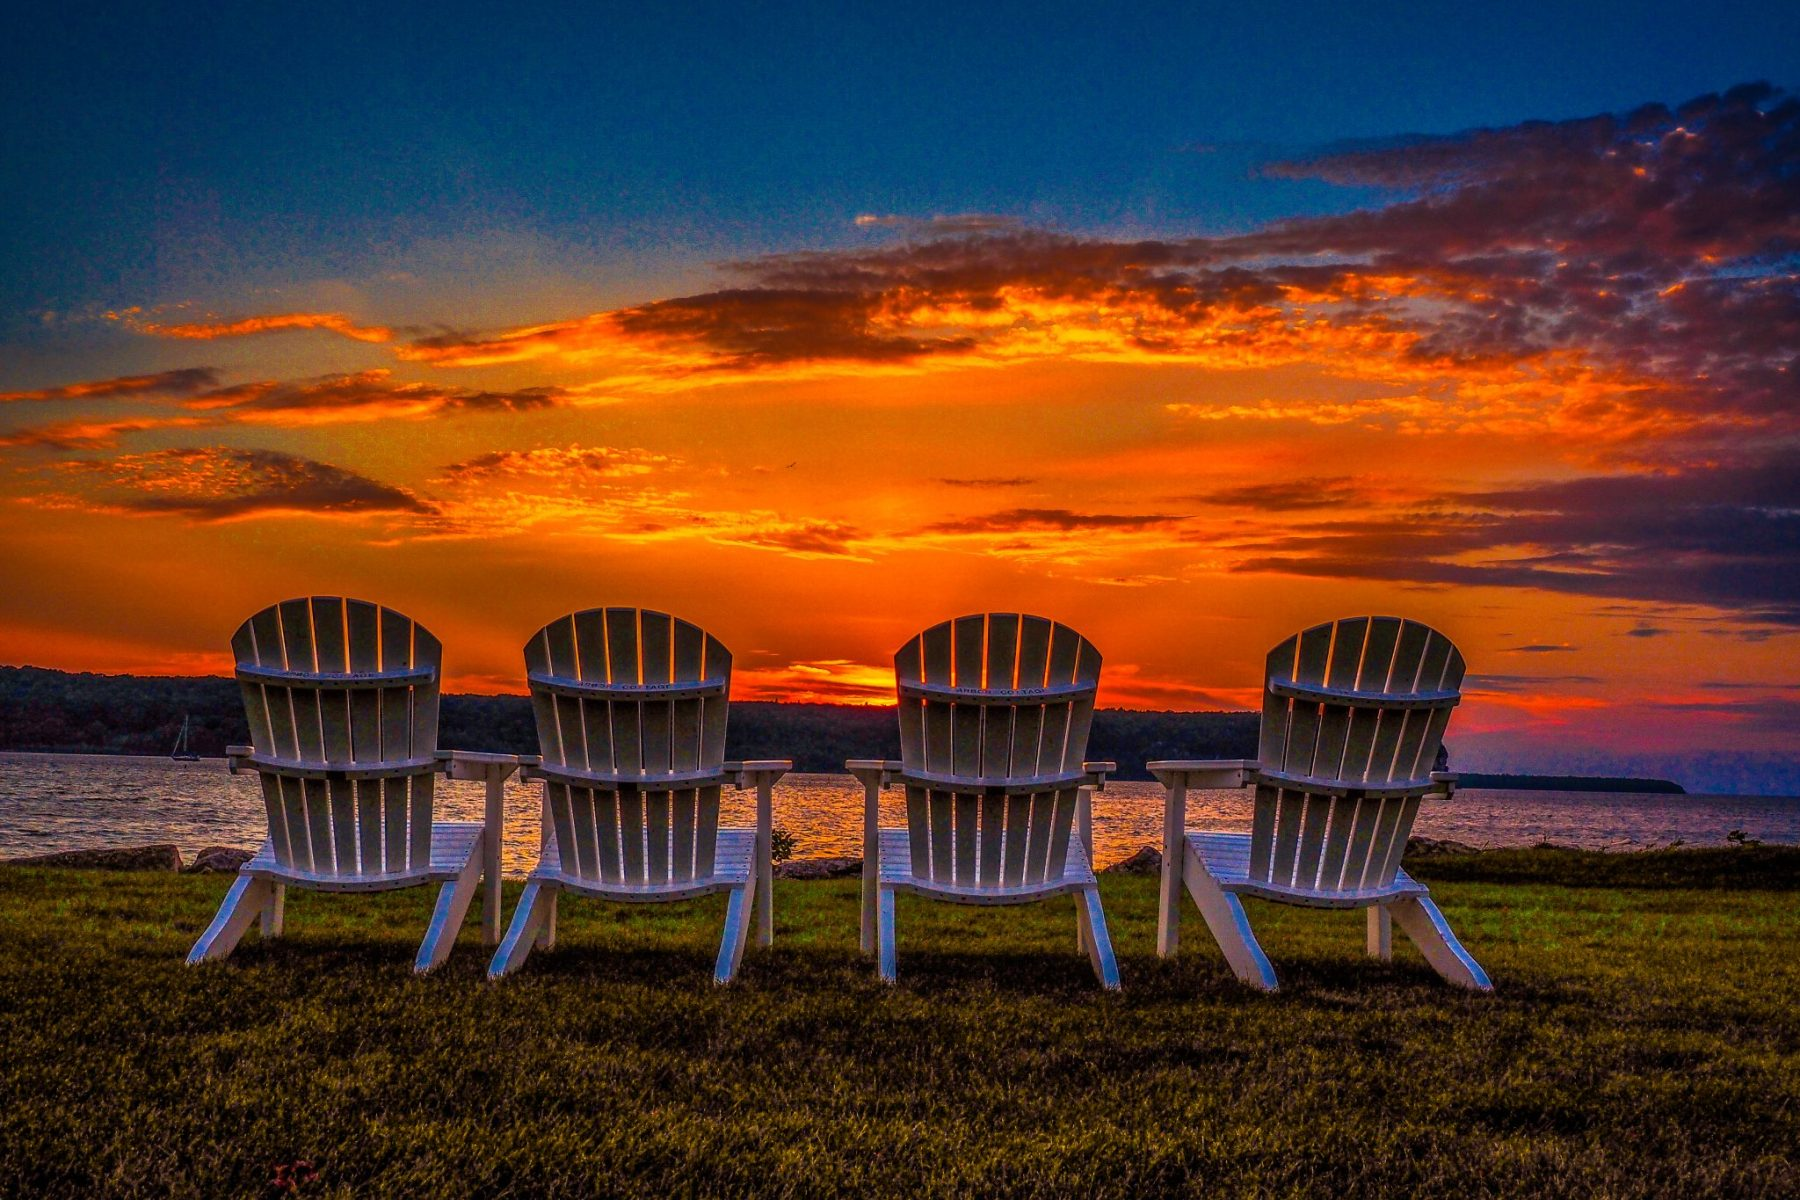 Four Chairs at Sunset